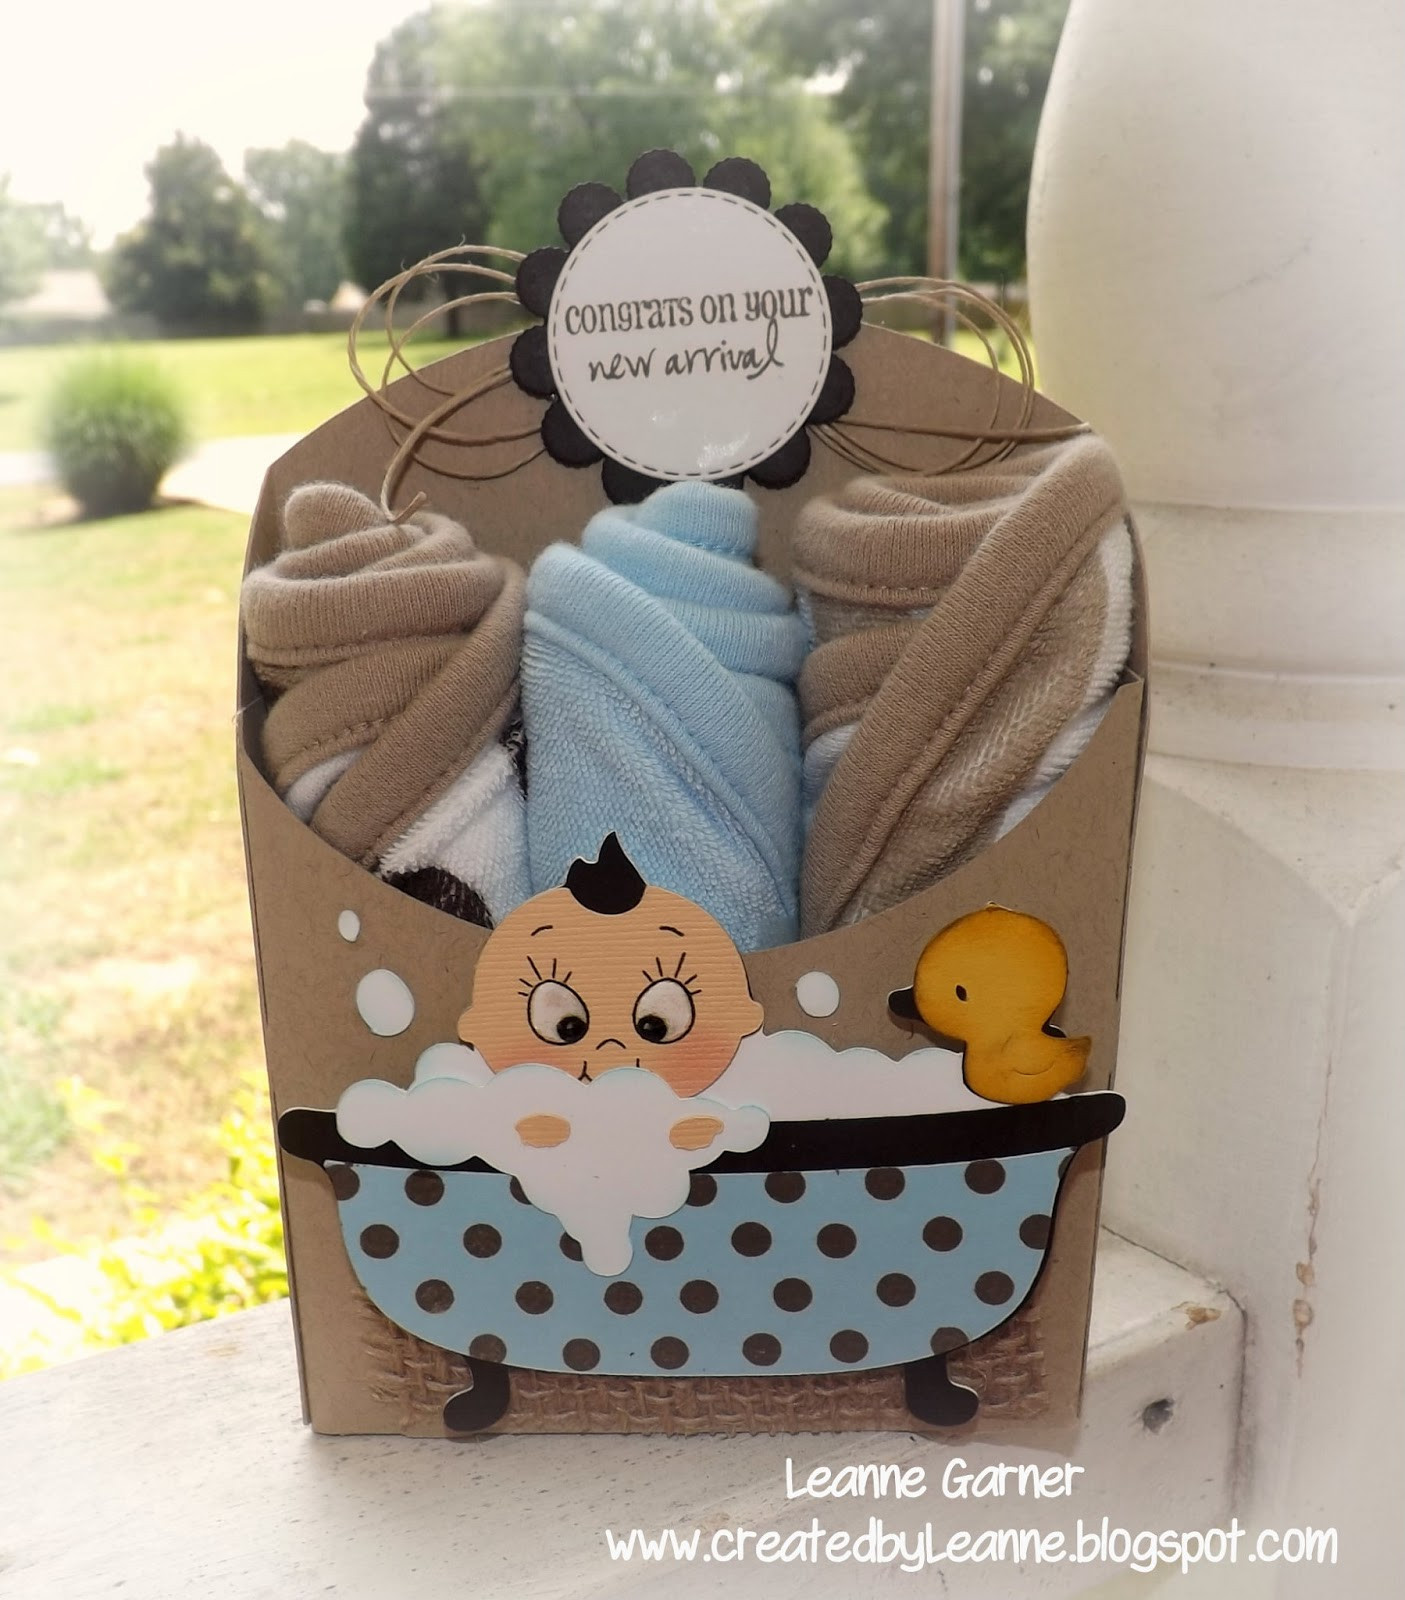 Awesome Baby Gift Ideas  Unique Cool New Baby Gifts Baskets For Boys & Girls